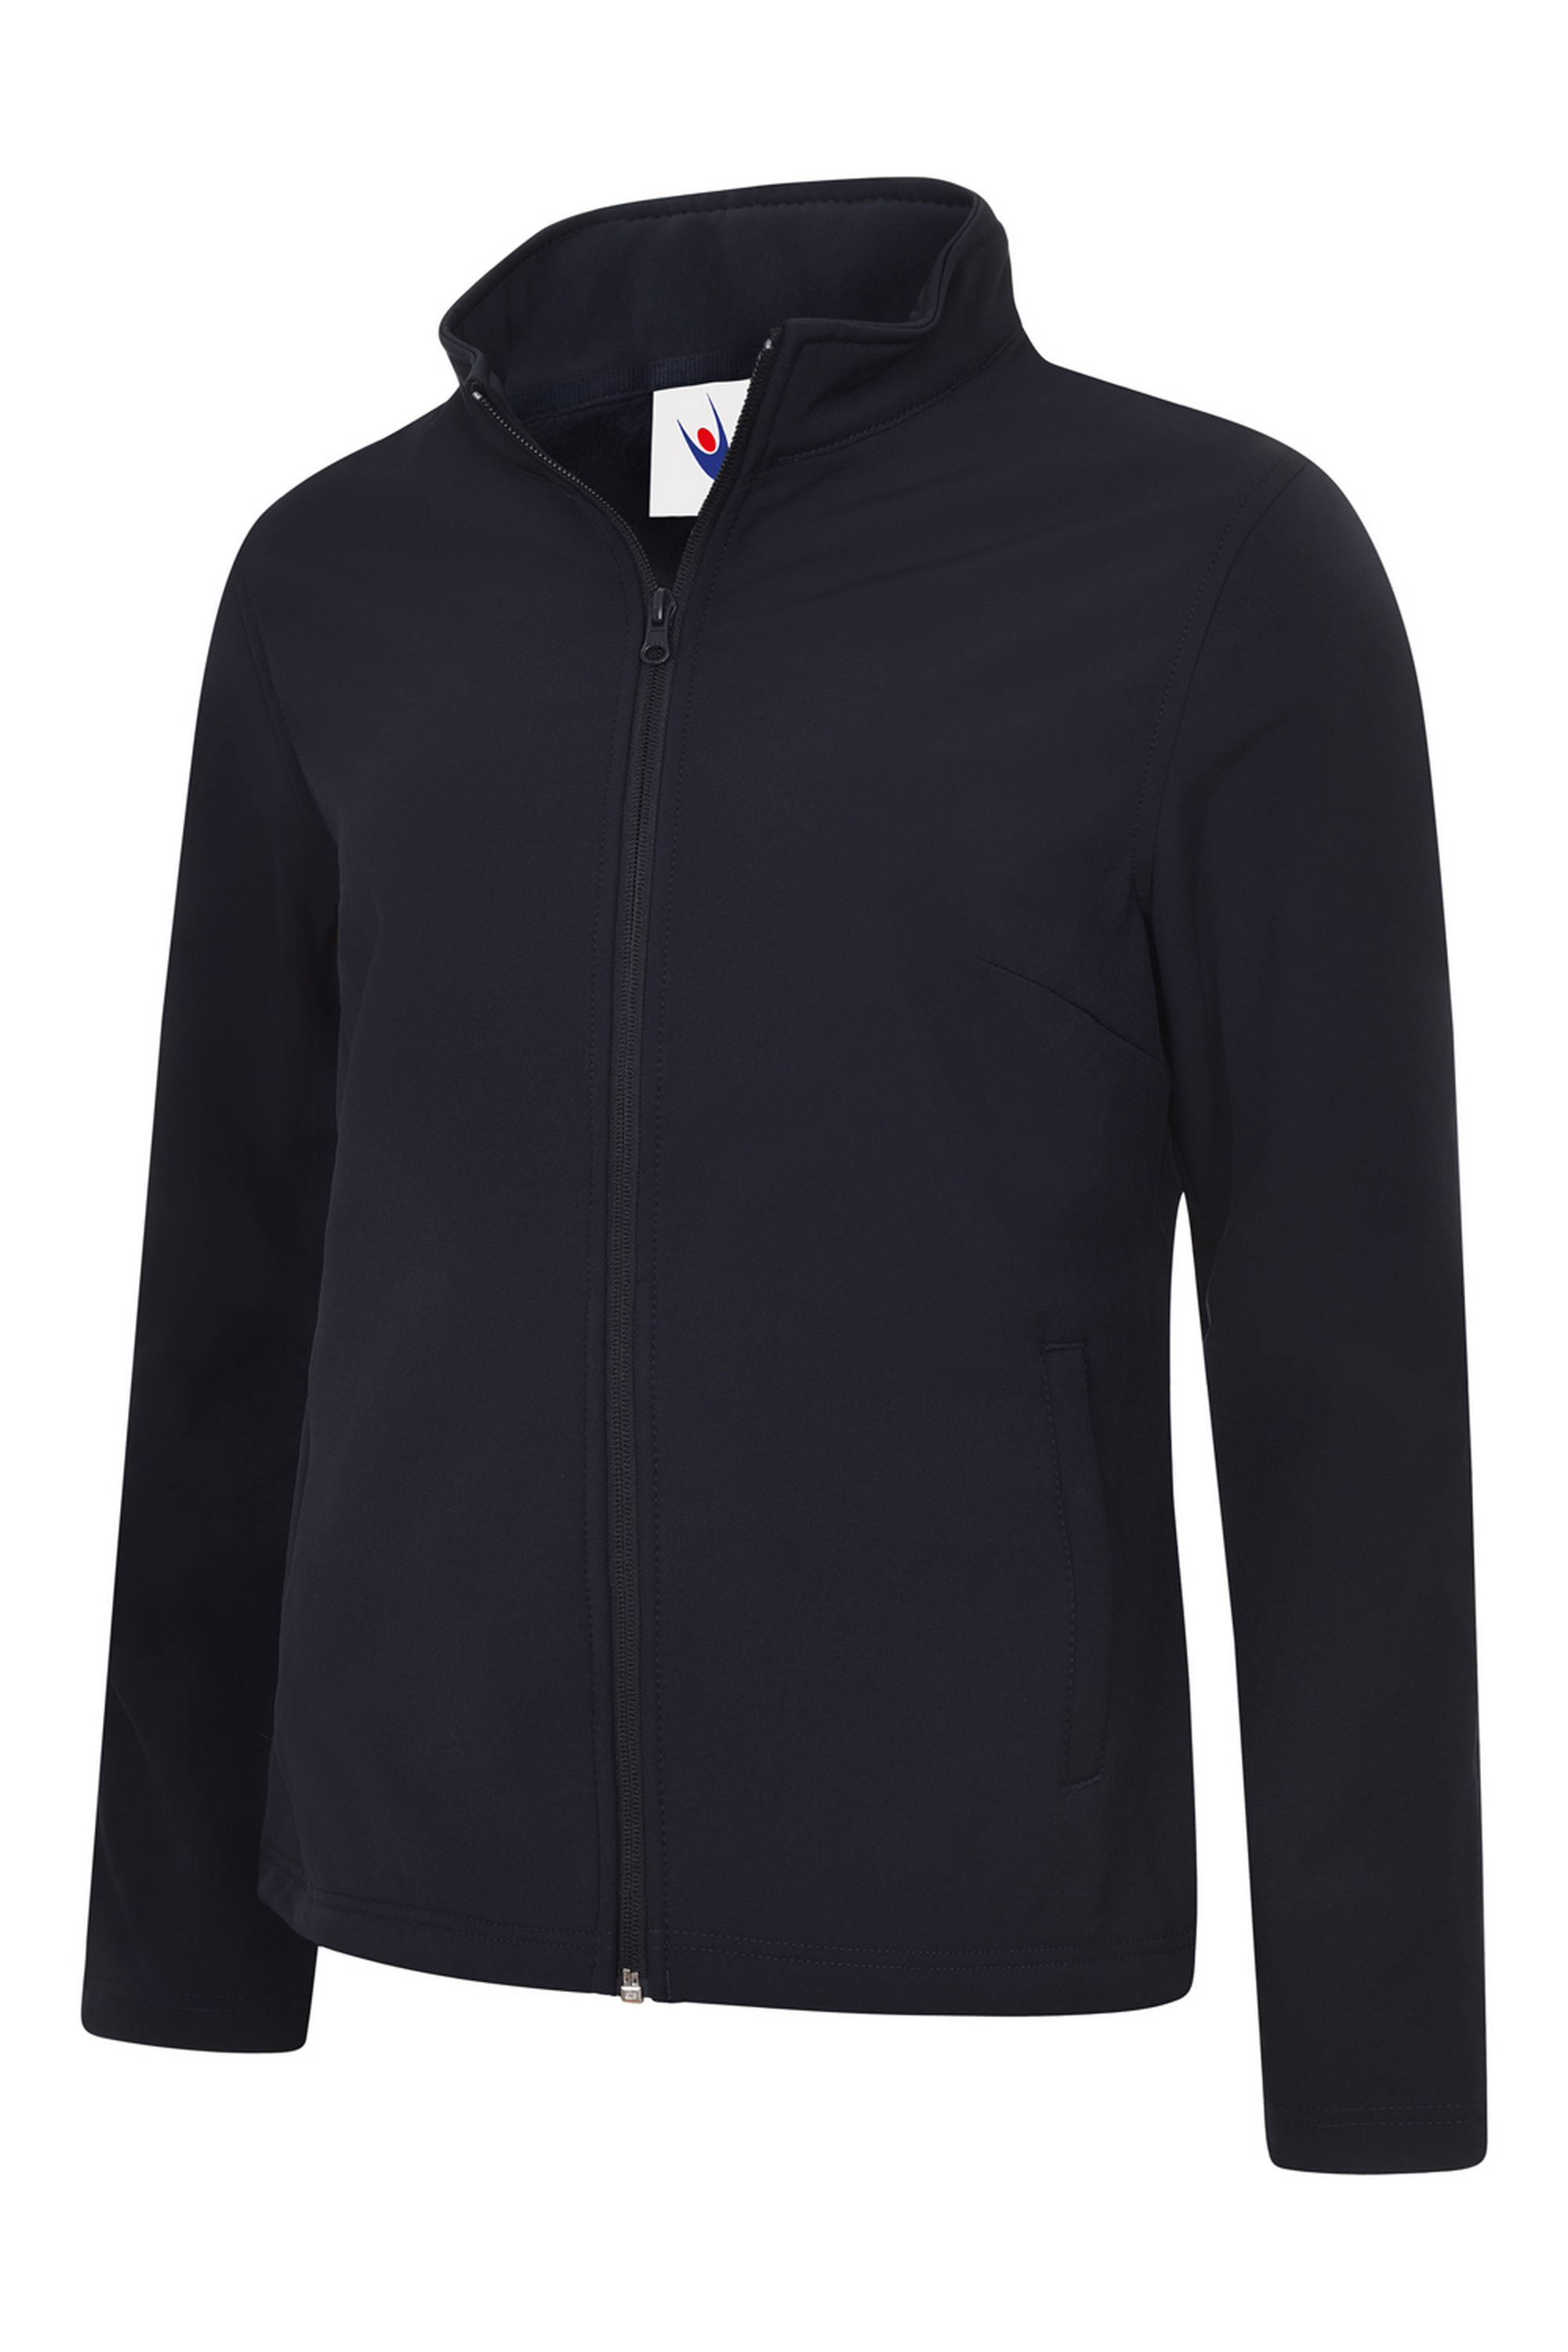 613 Ladies Classic Full Zip Soft Shell Jacket